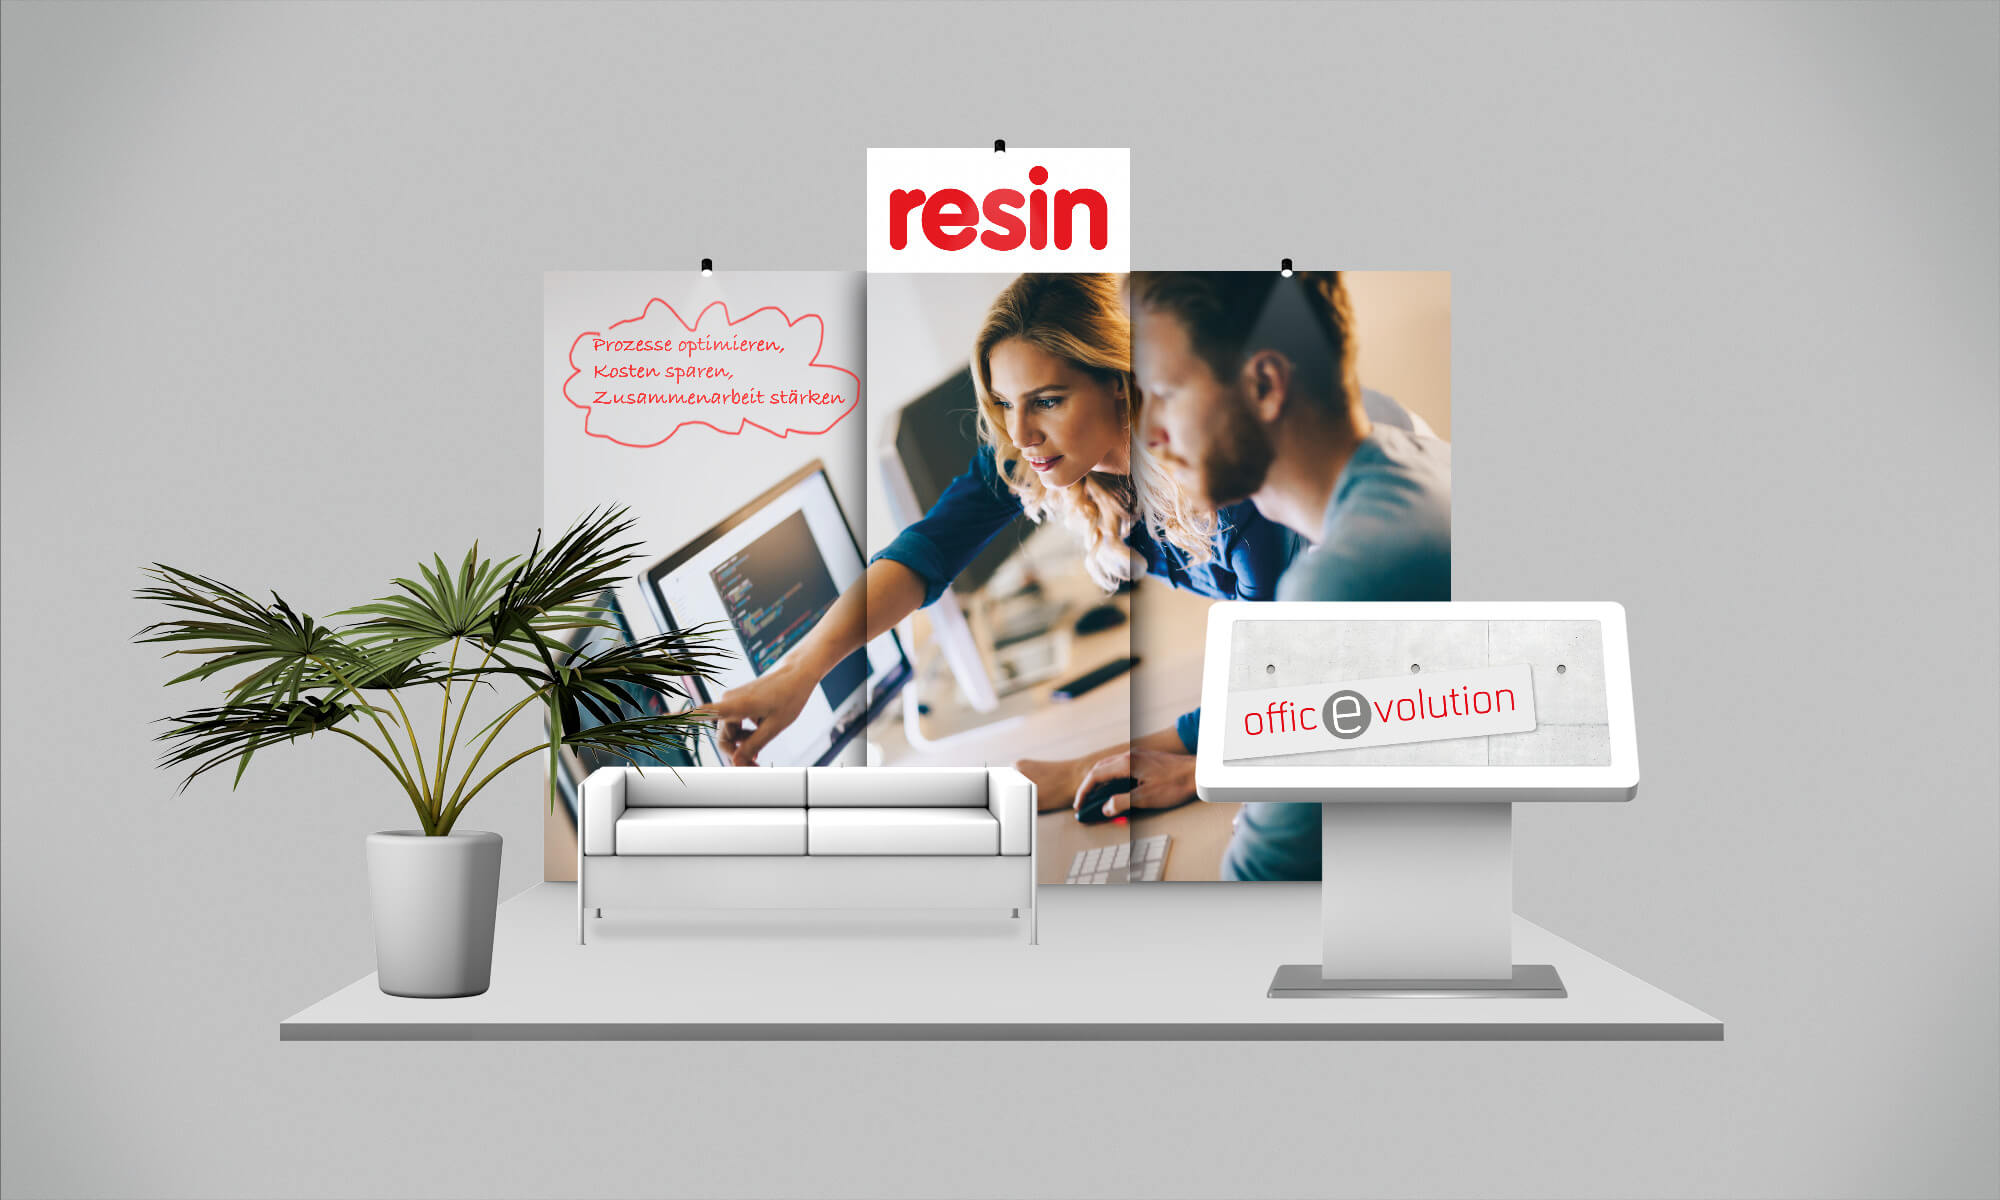 resin GmbH & Co. KG